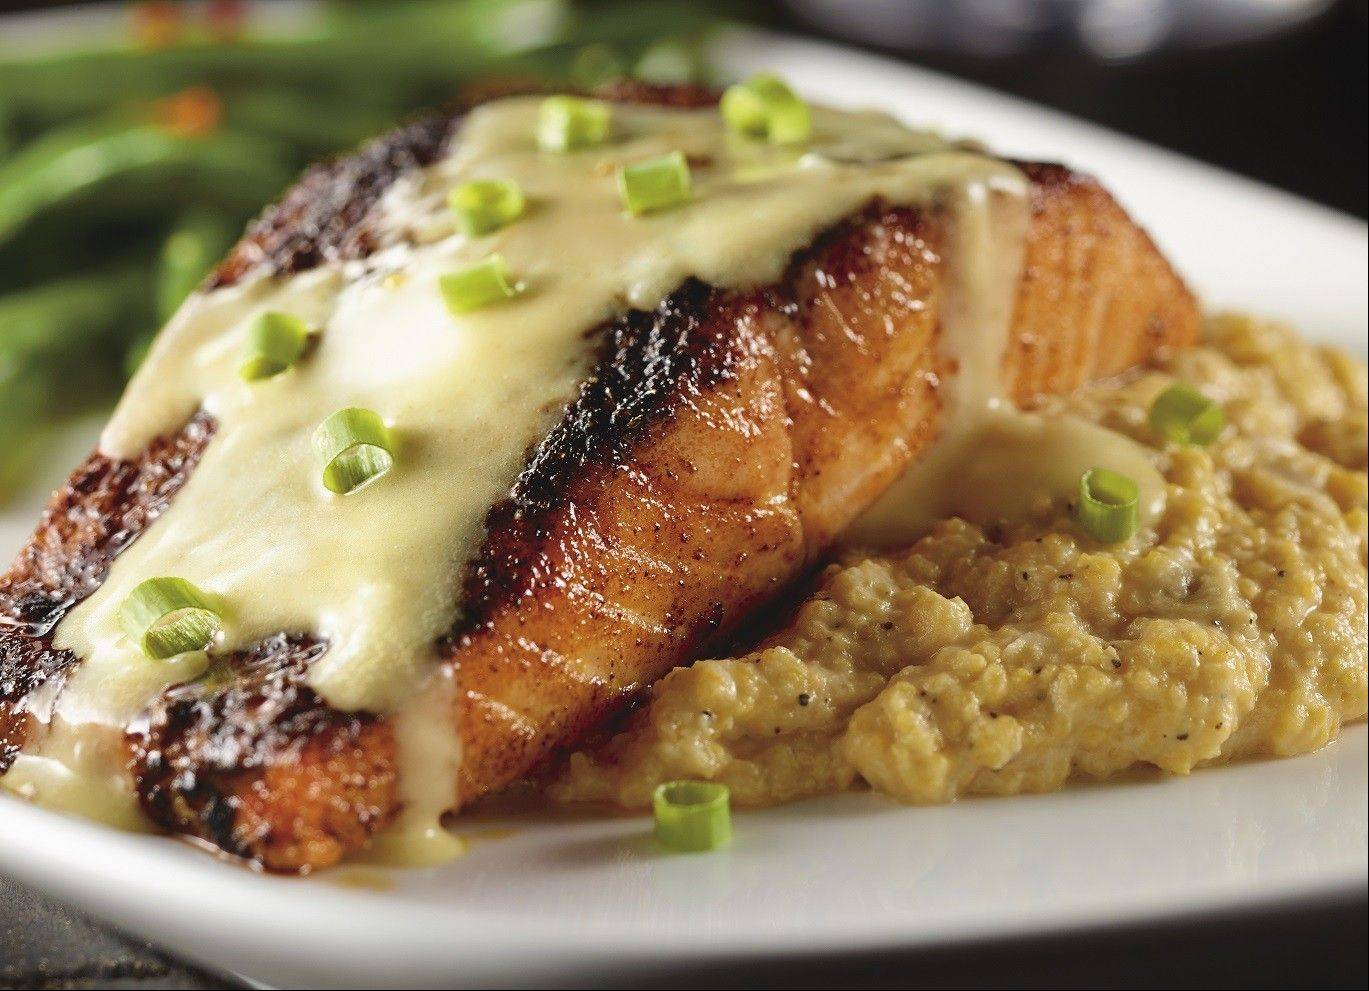 The blackened salmon comes on a bed of cheddar grits.